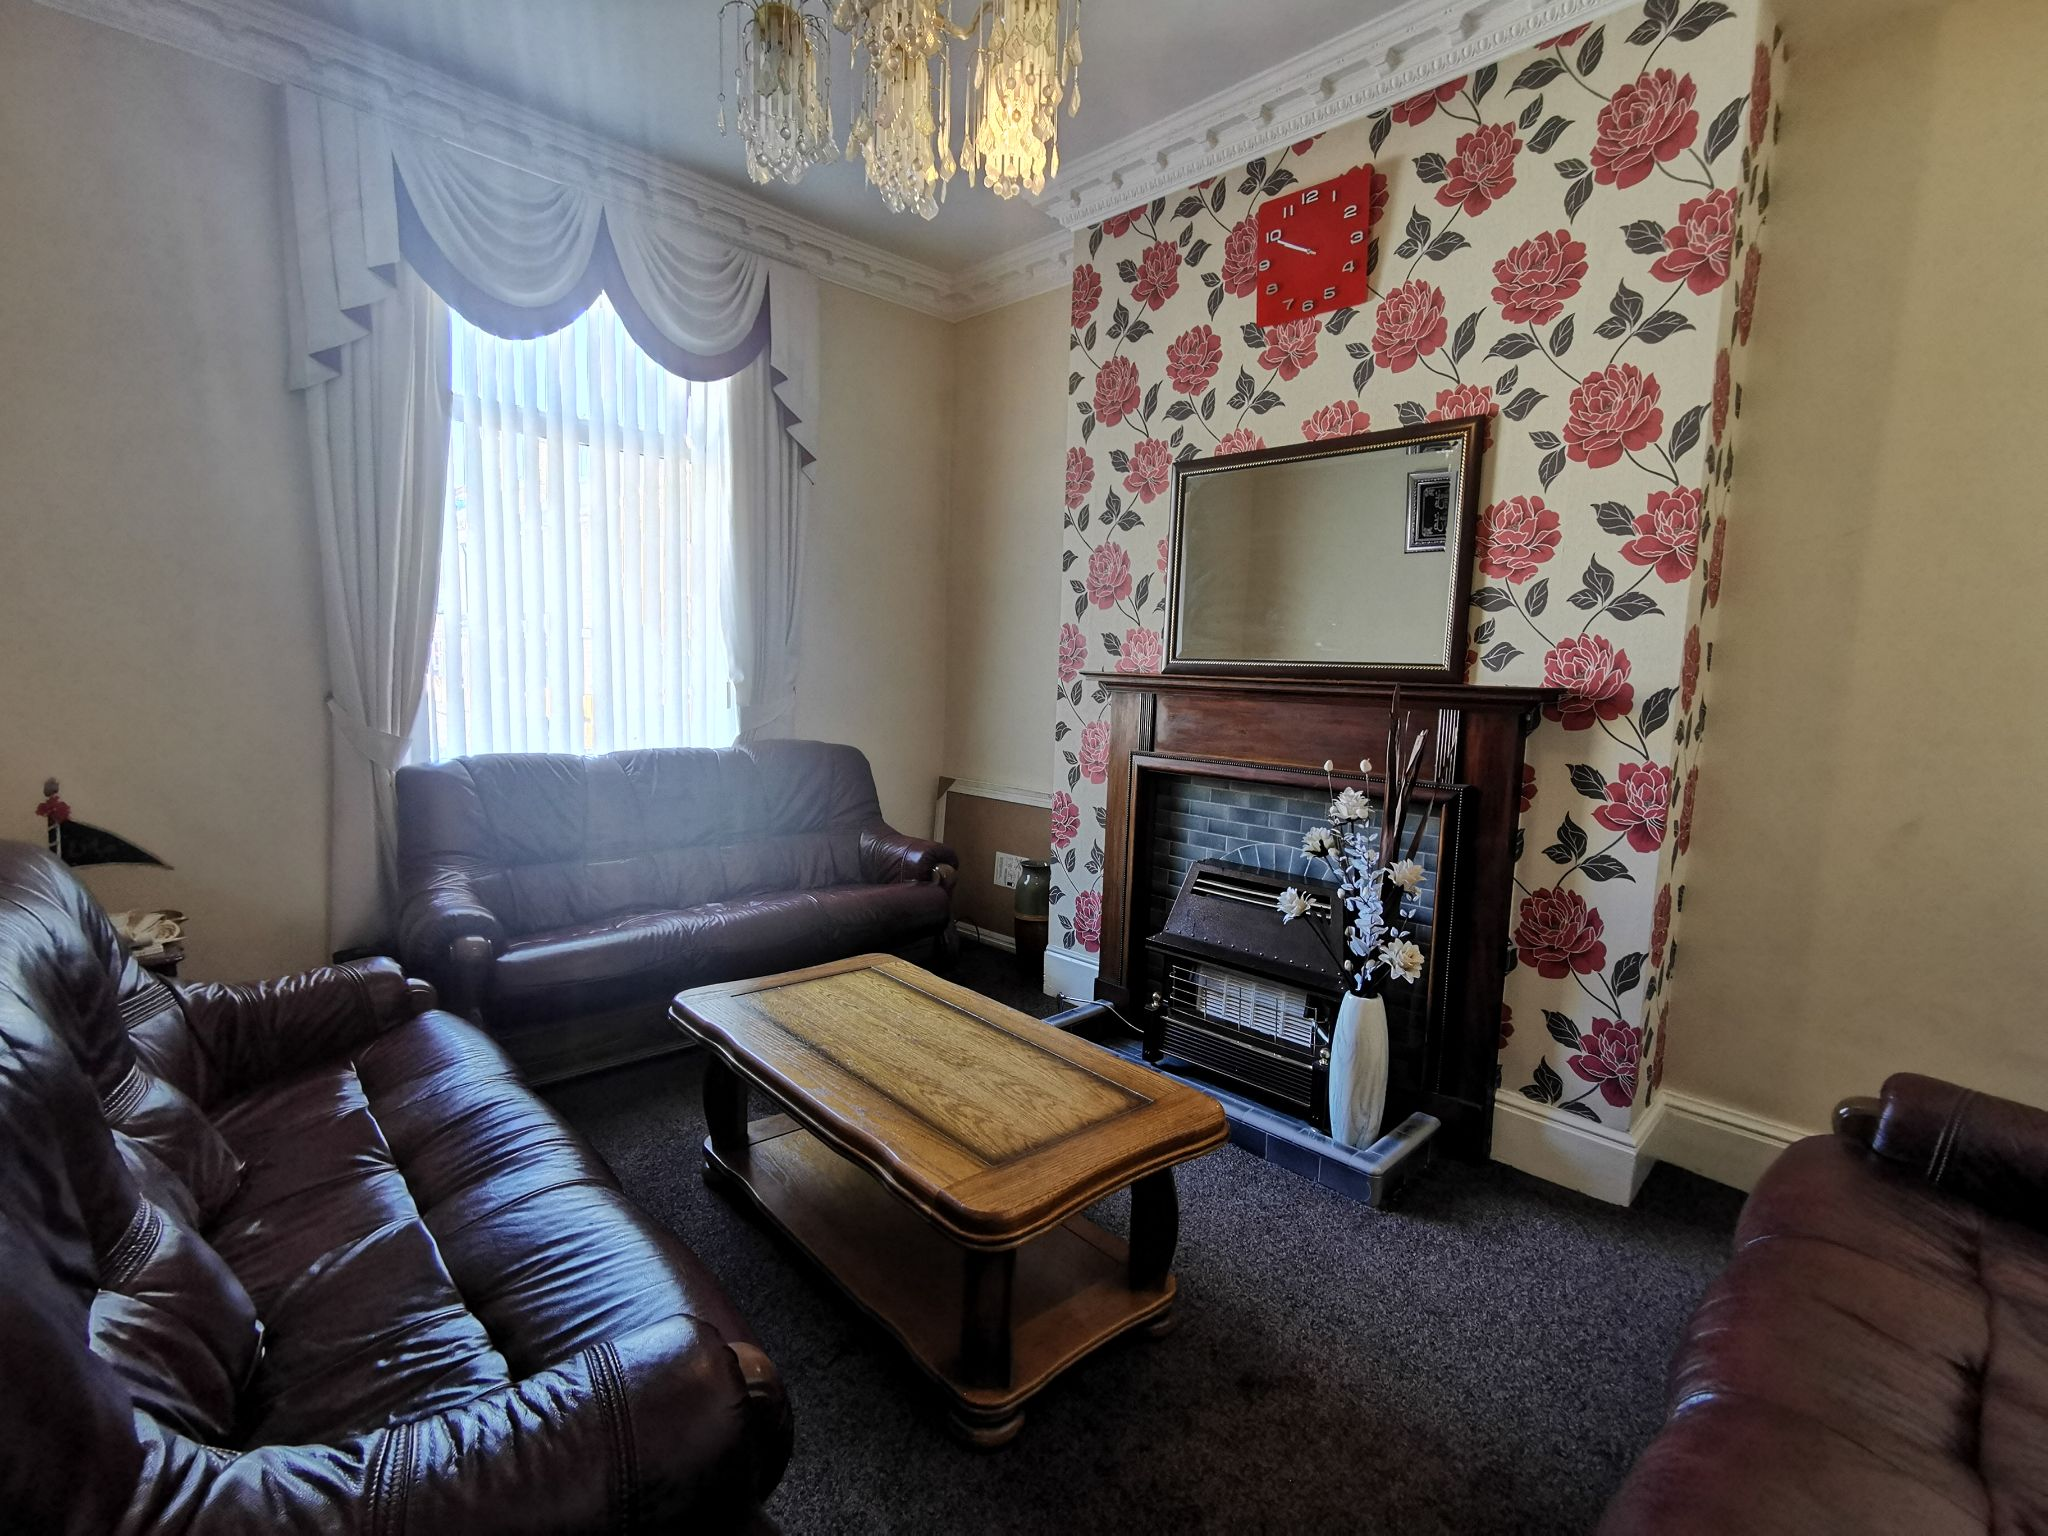 4 bedroom mid terraced house For Sale in Bradford - Photograph 2.